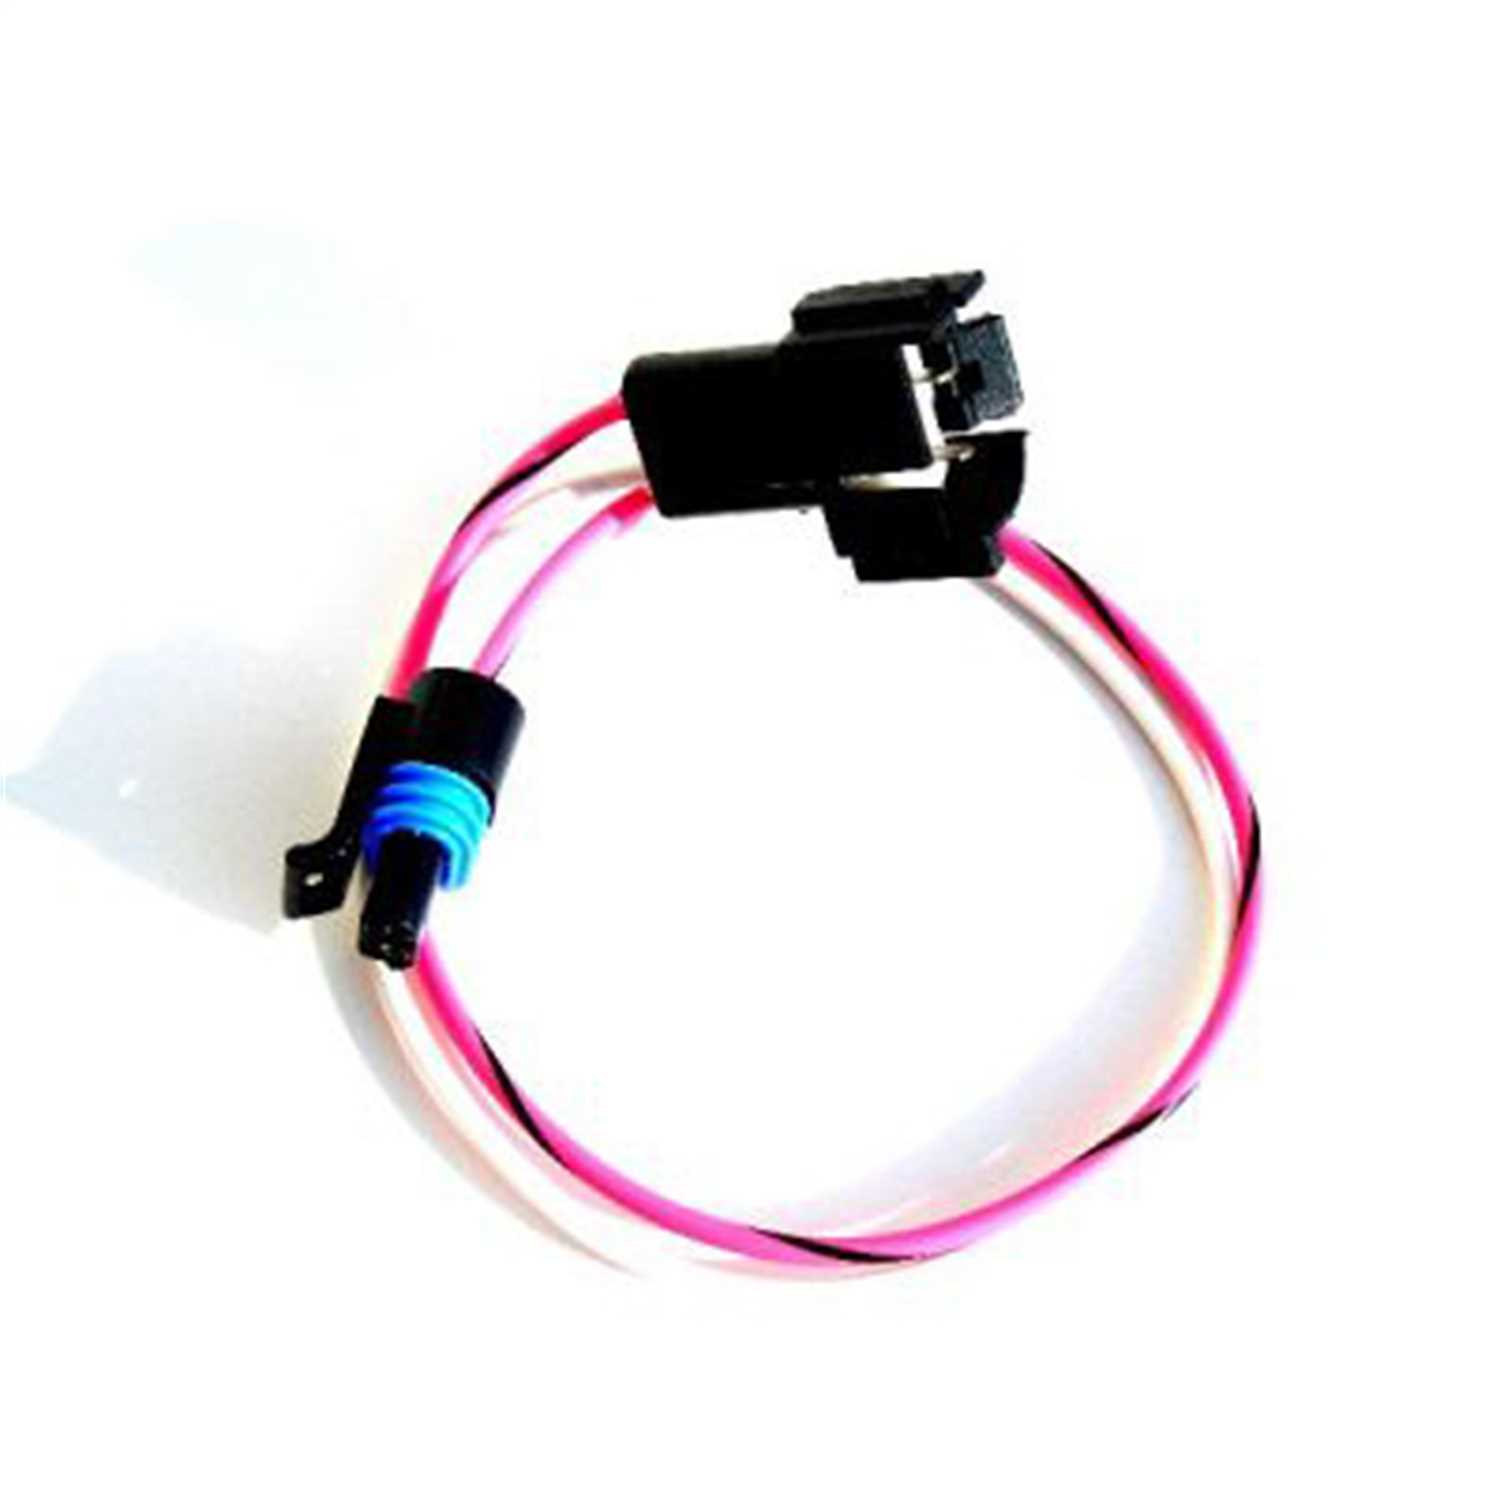 Coil To Distributor Wiring Harness - Tennessee Sd Sport Gm Throttle Wiring Harness on gm wiring alternator, gm wiring gauge, obd2 to obd1 jumper harness, radio harness, gm wiring connectors, gm alternator harness,